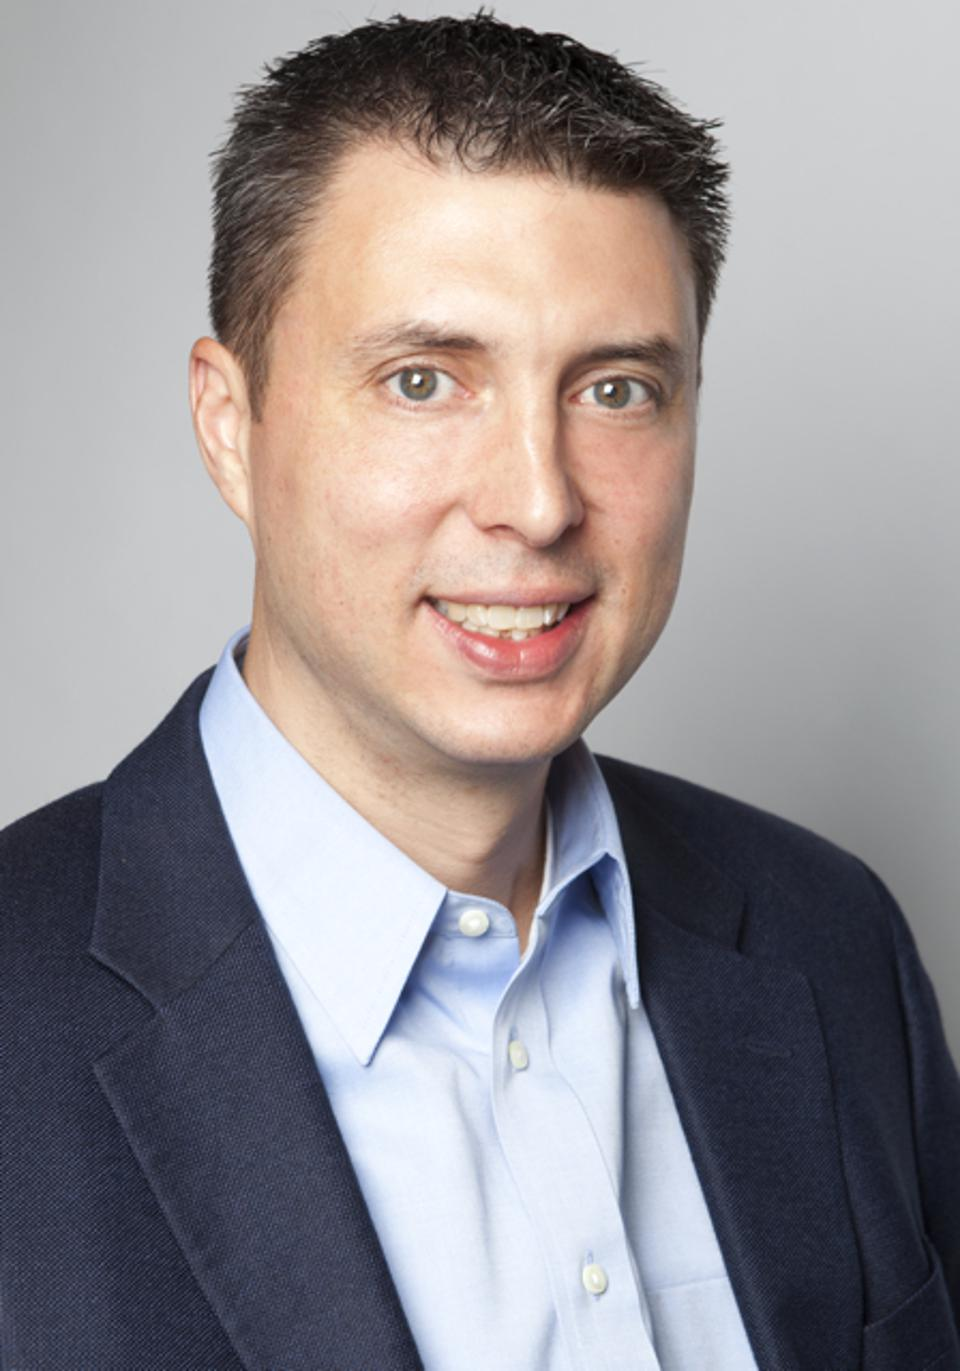 Nathan Feather, CFO of PrimeRevenue